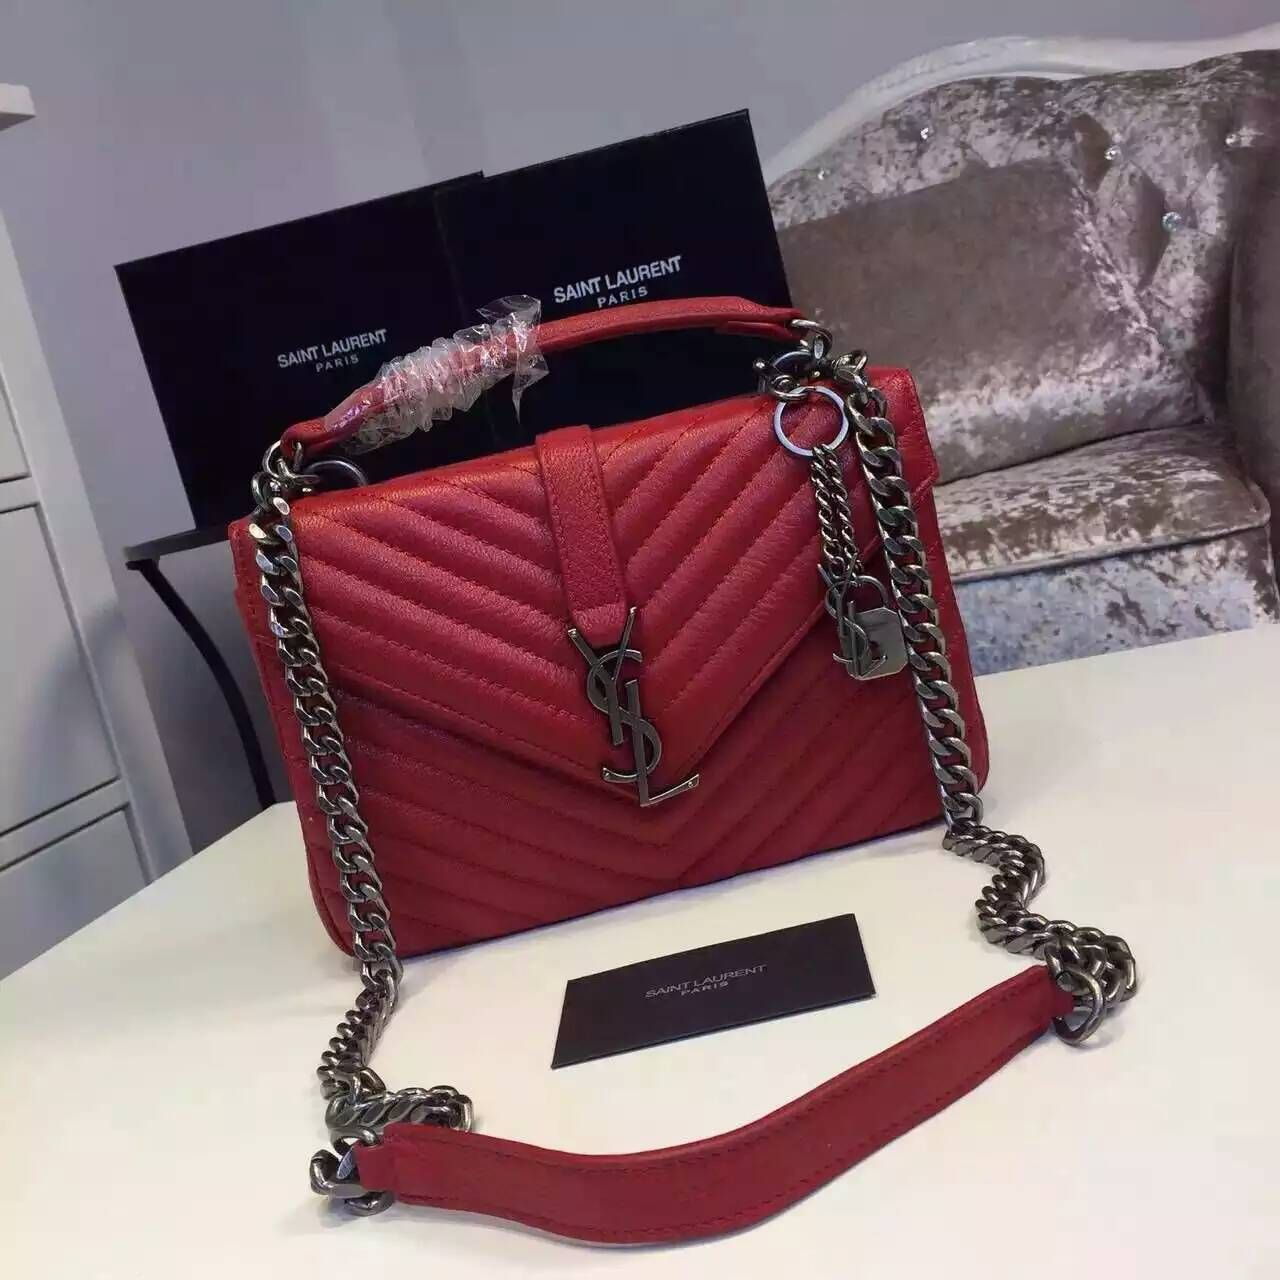 27c3c0de8d 2016 New Saint Laurent Bag Cheap Sale-Saint Laurent Classic Medium COLLEGE  MONOGRAM Bag in Red MATELASSE Leather